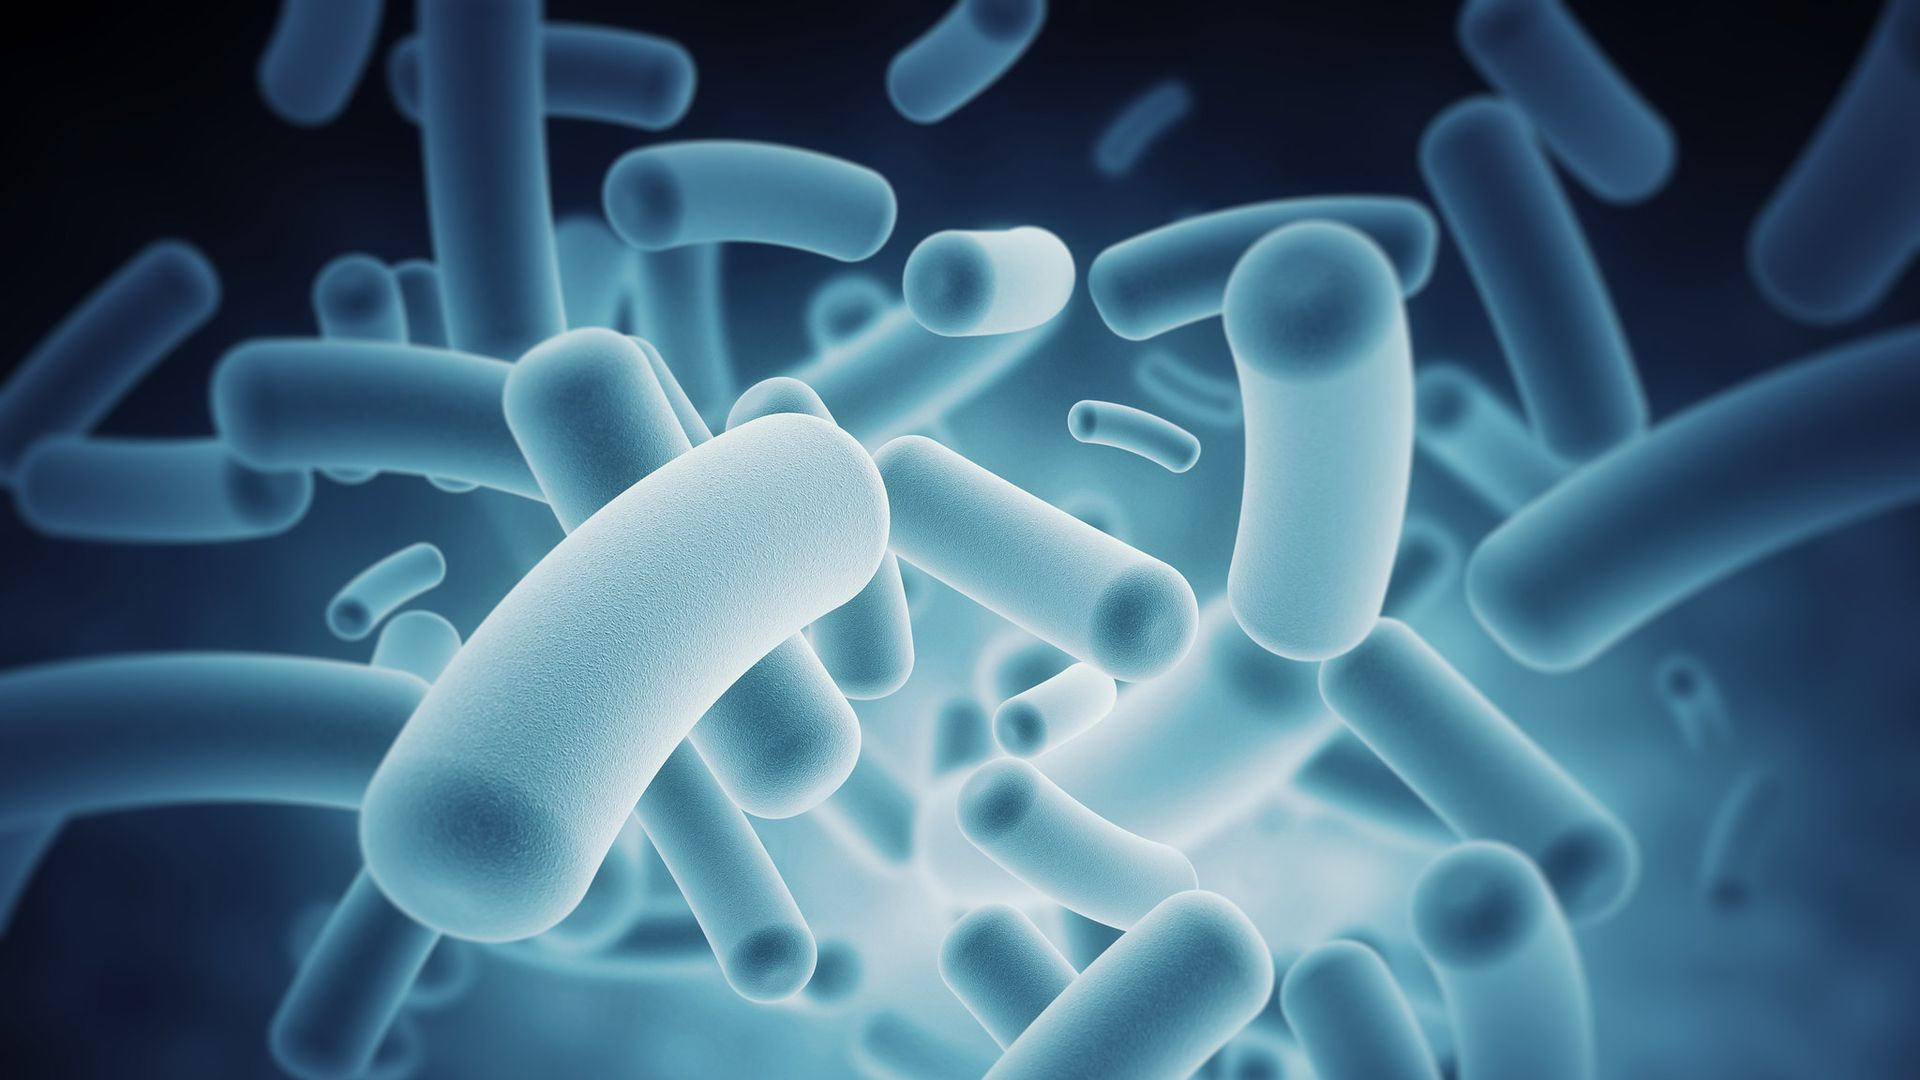 Photo of gut microbes from IBM